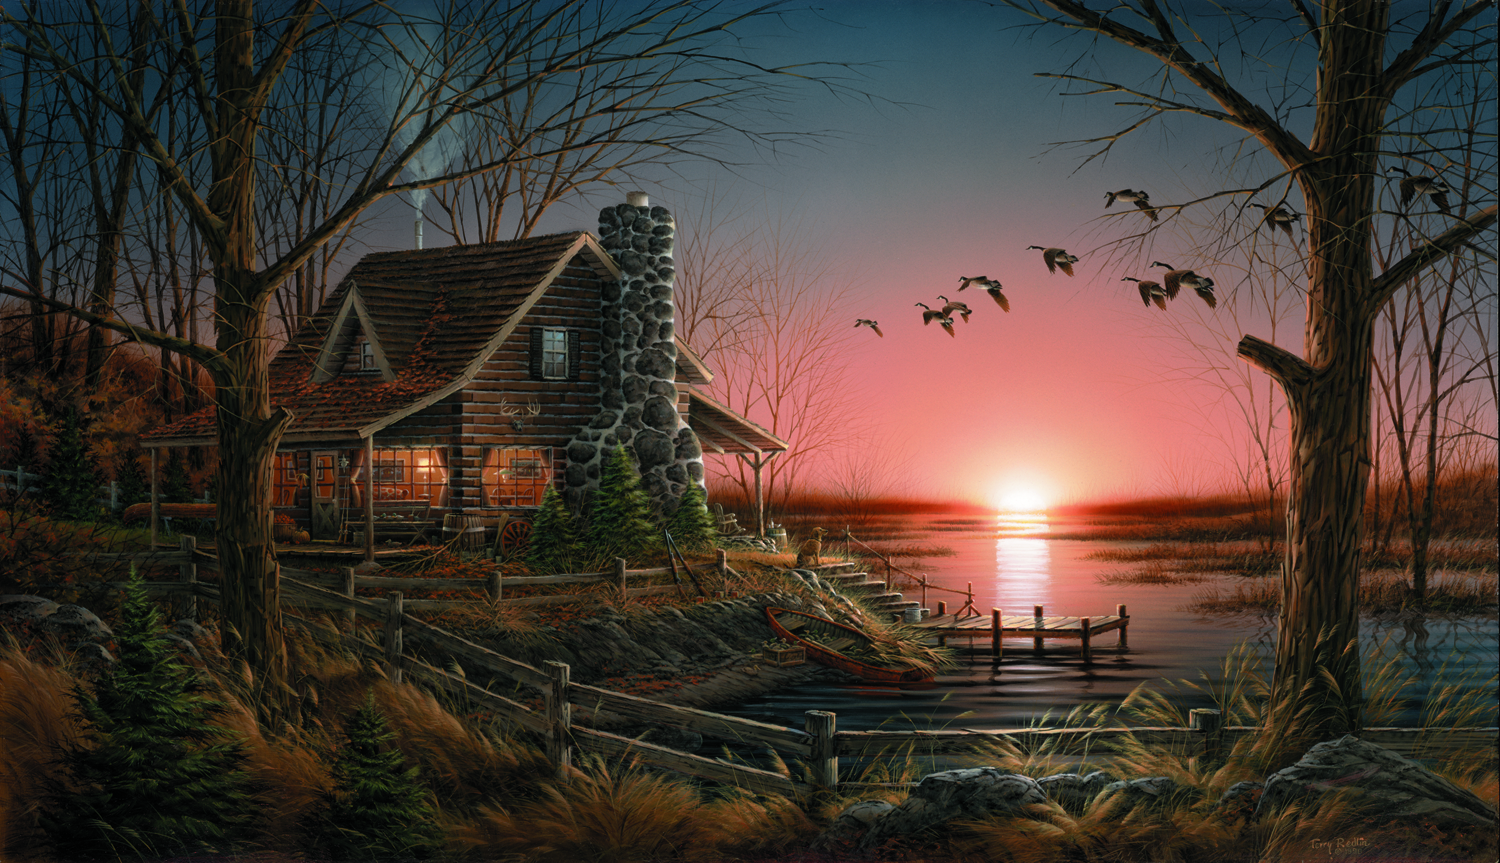 Log cabin in the woods painting - Images